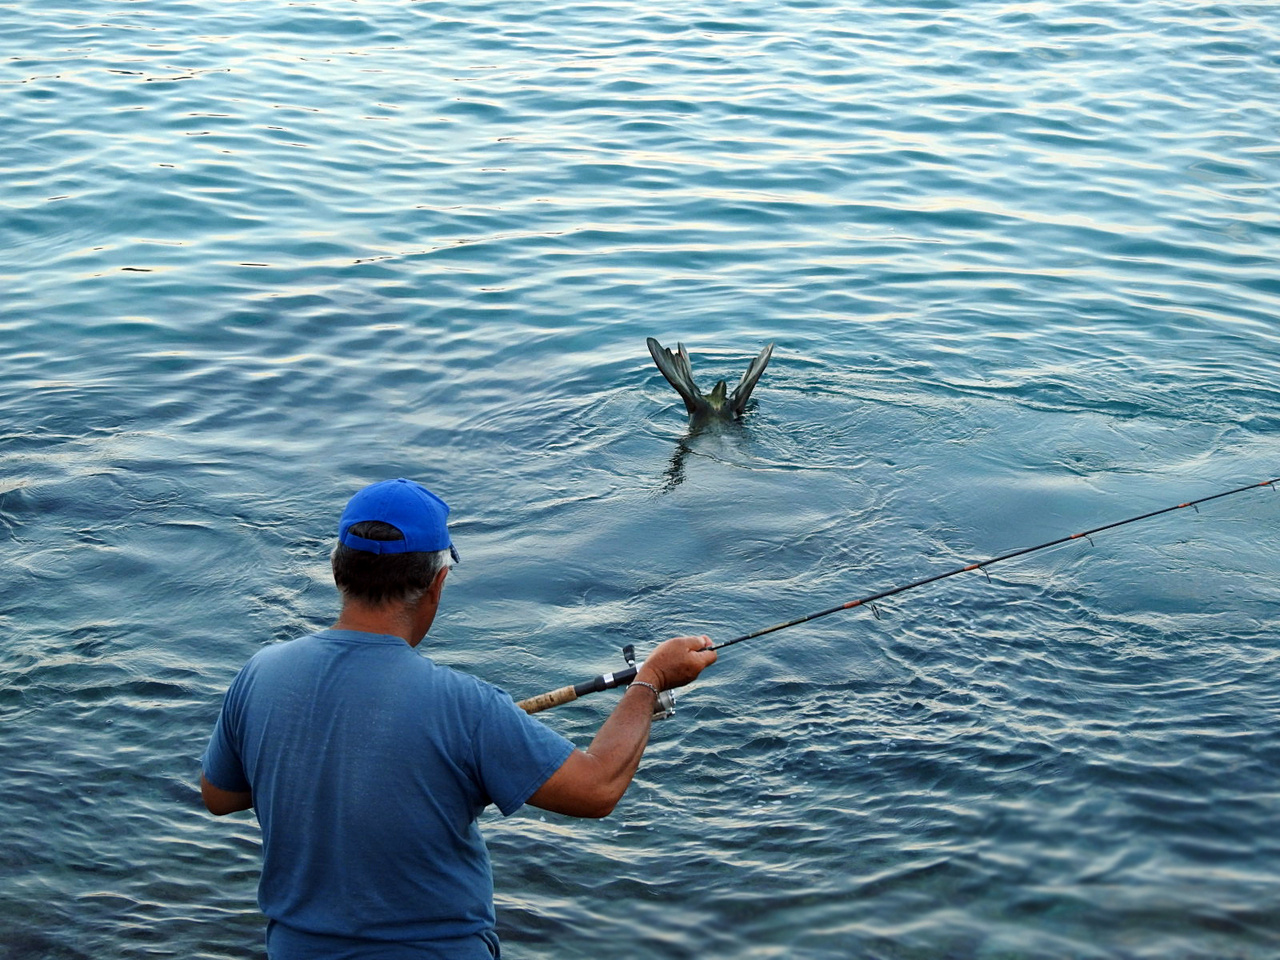 A fisherman demonstrates responsible fishing by keeping his line up until the seal swims away